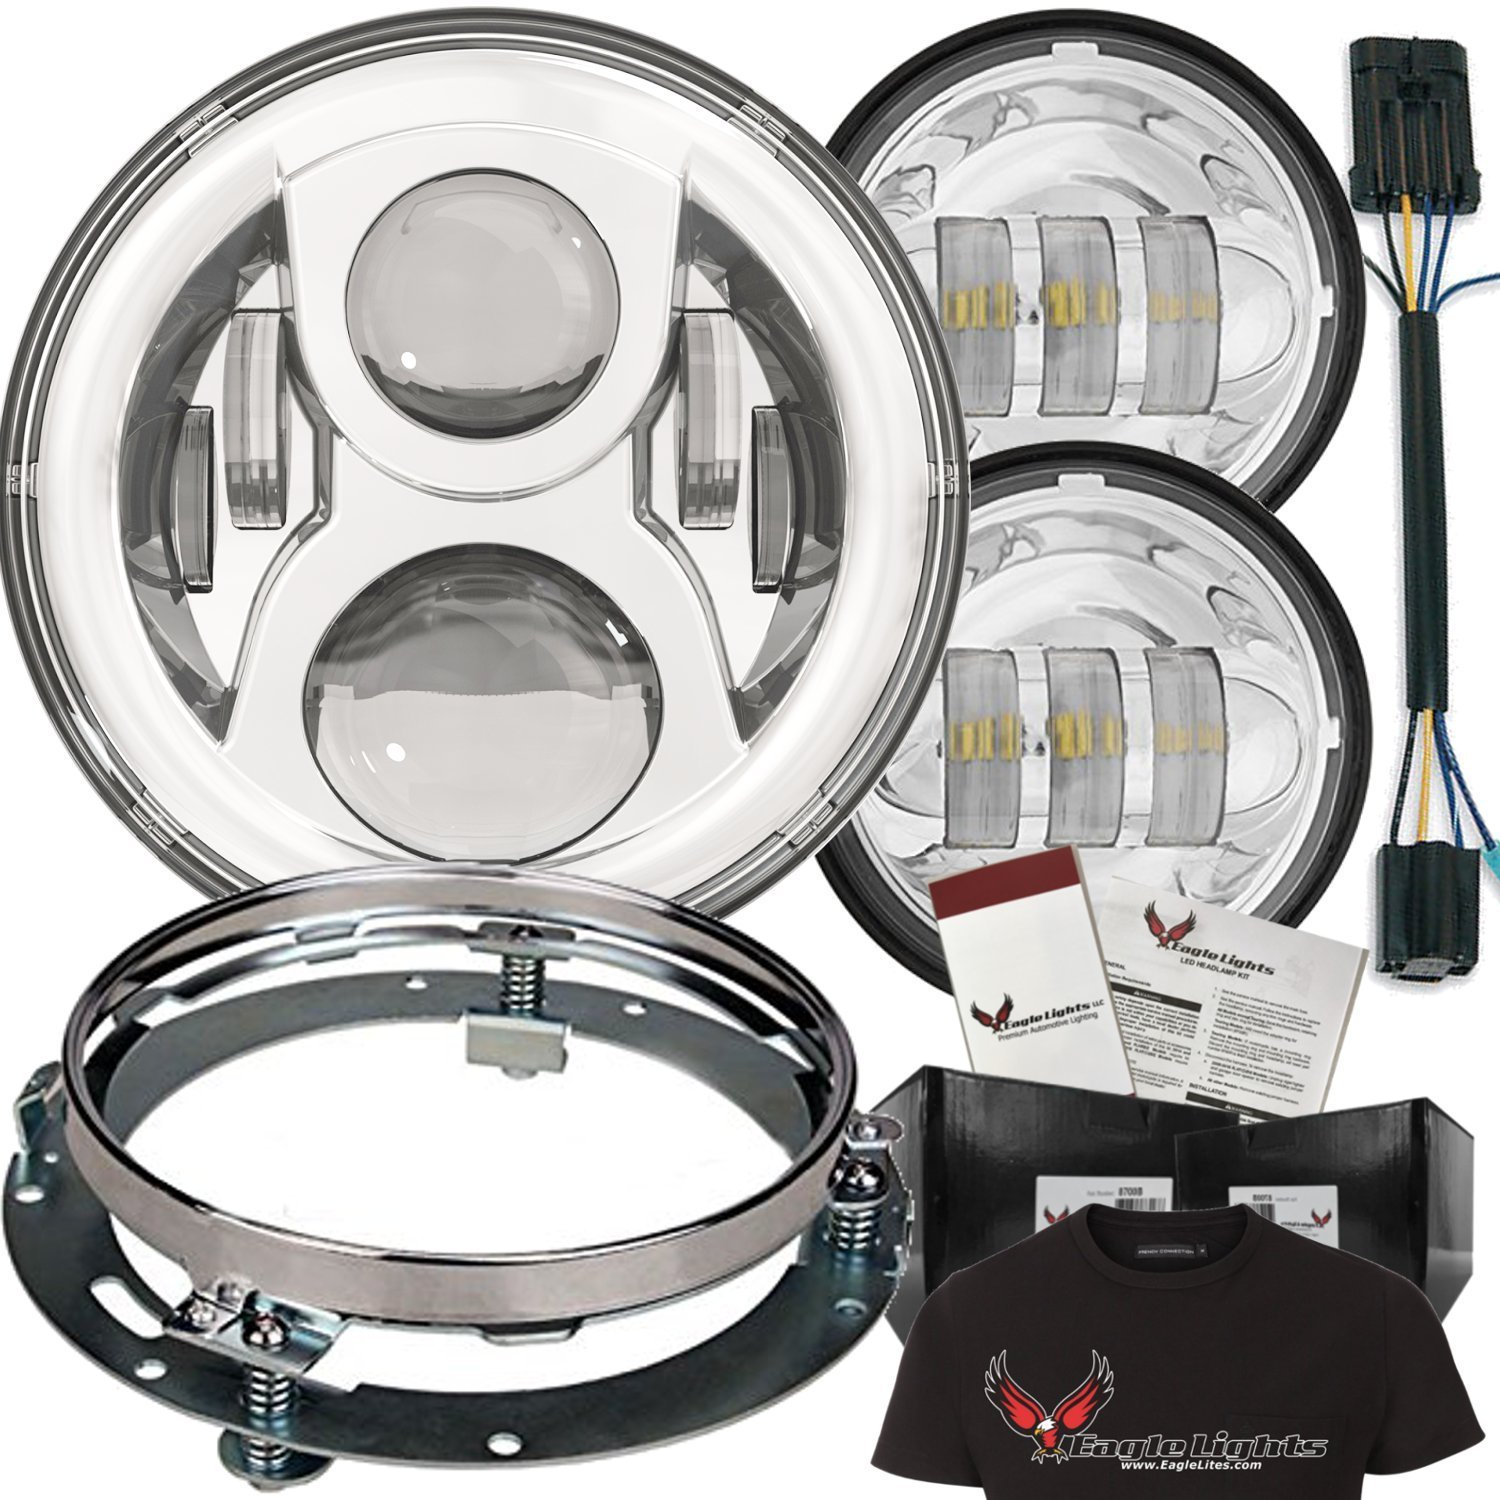 """Eagle Lights 7"""" Round LED Headlight Kit - 8700CG2 Chrome Gen 2 Daymaker with Matching Passing Lamps, Adapter Wire & Ring Free T-Shirt included"""